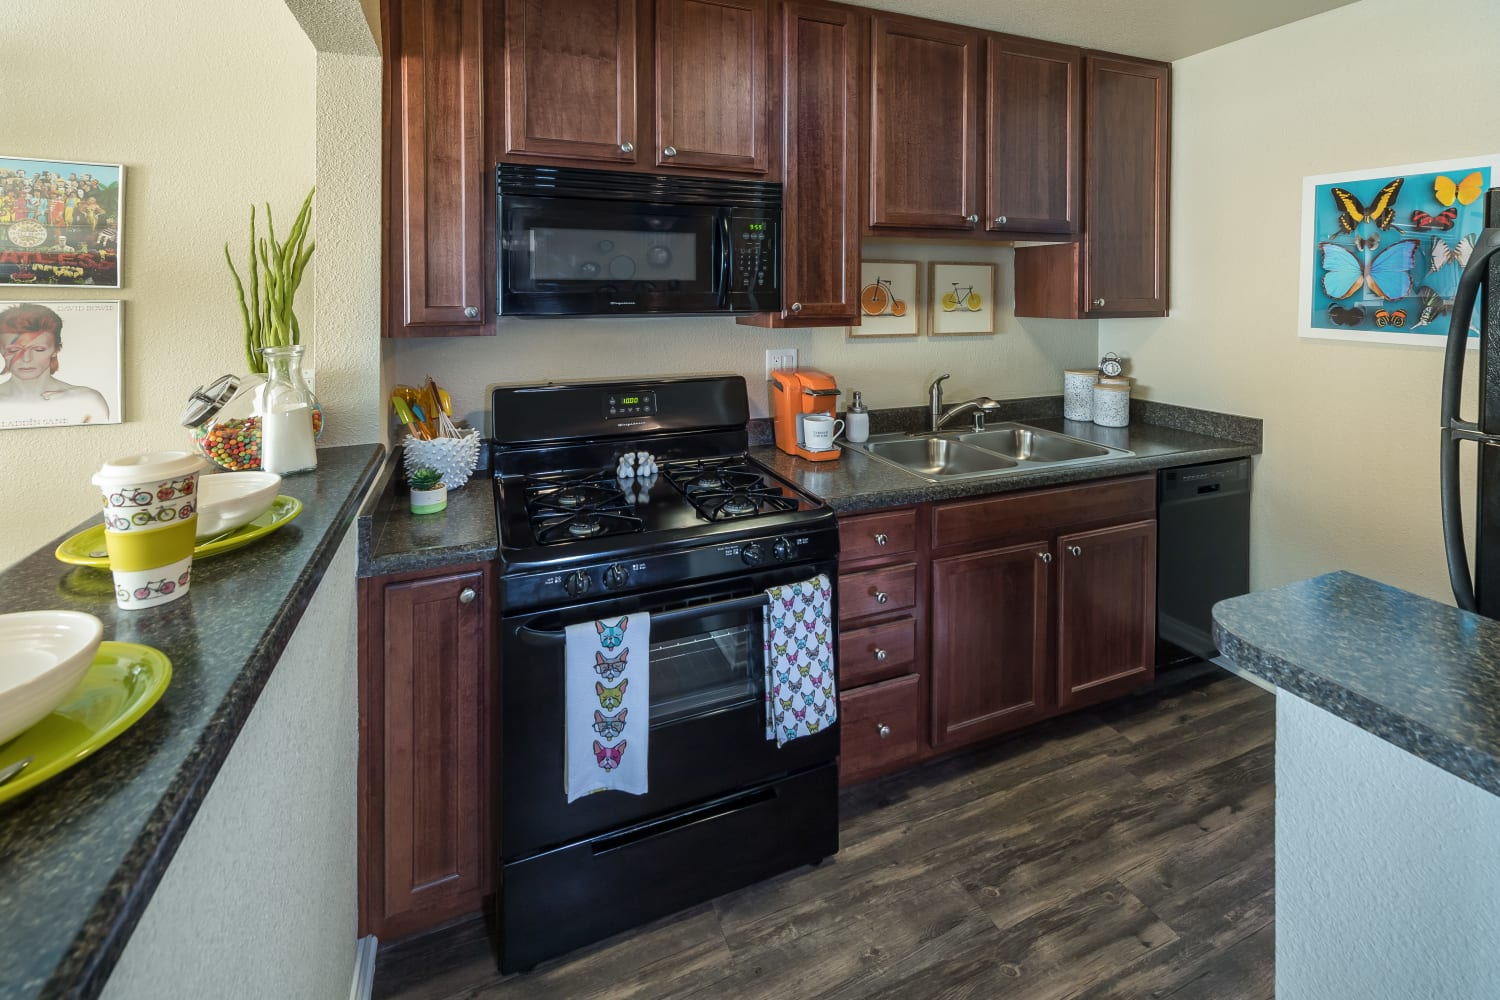 Kitchen at UCA Apartment Homes in Fullerton, California